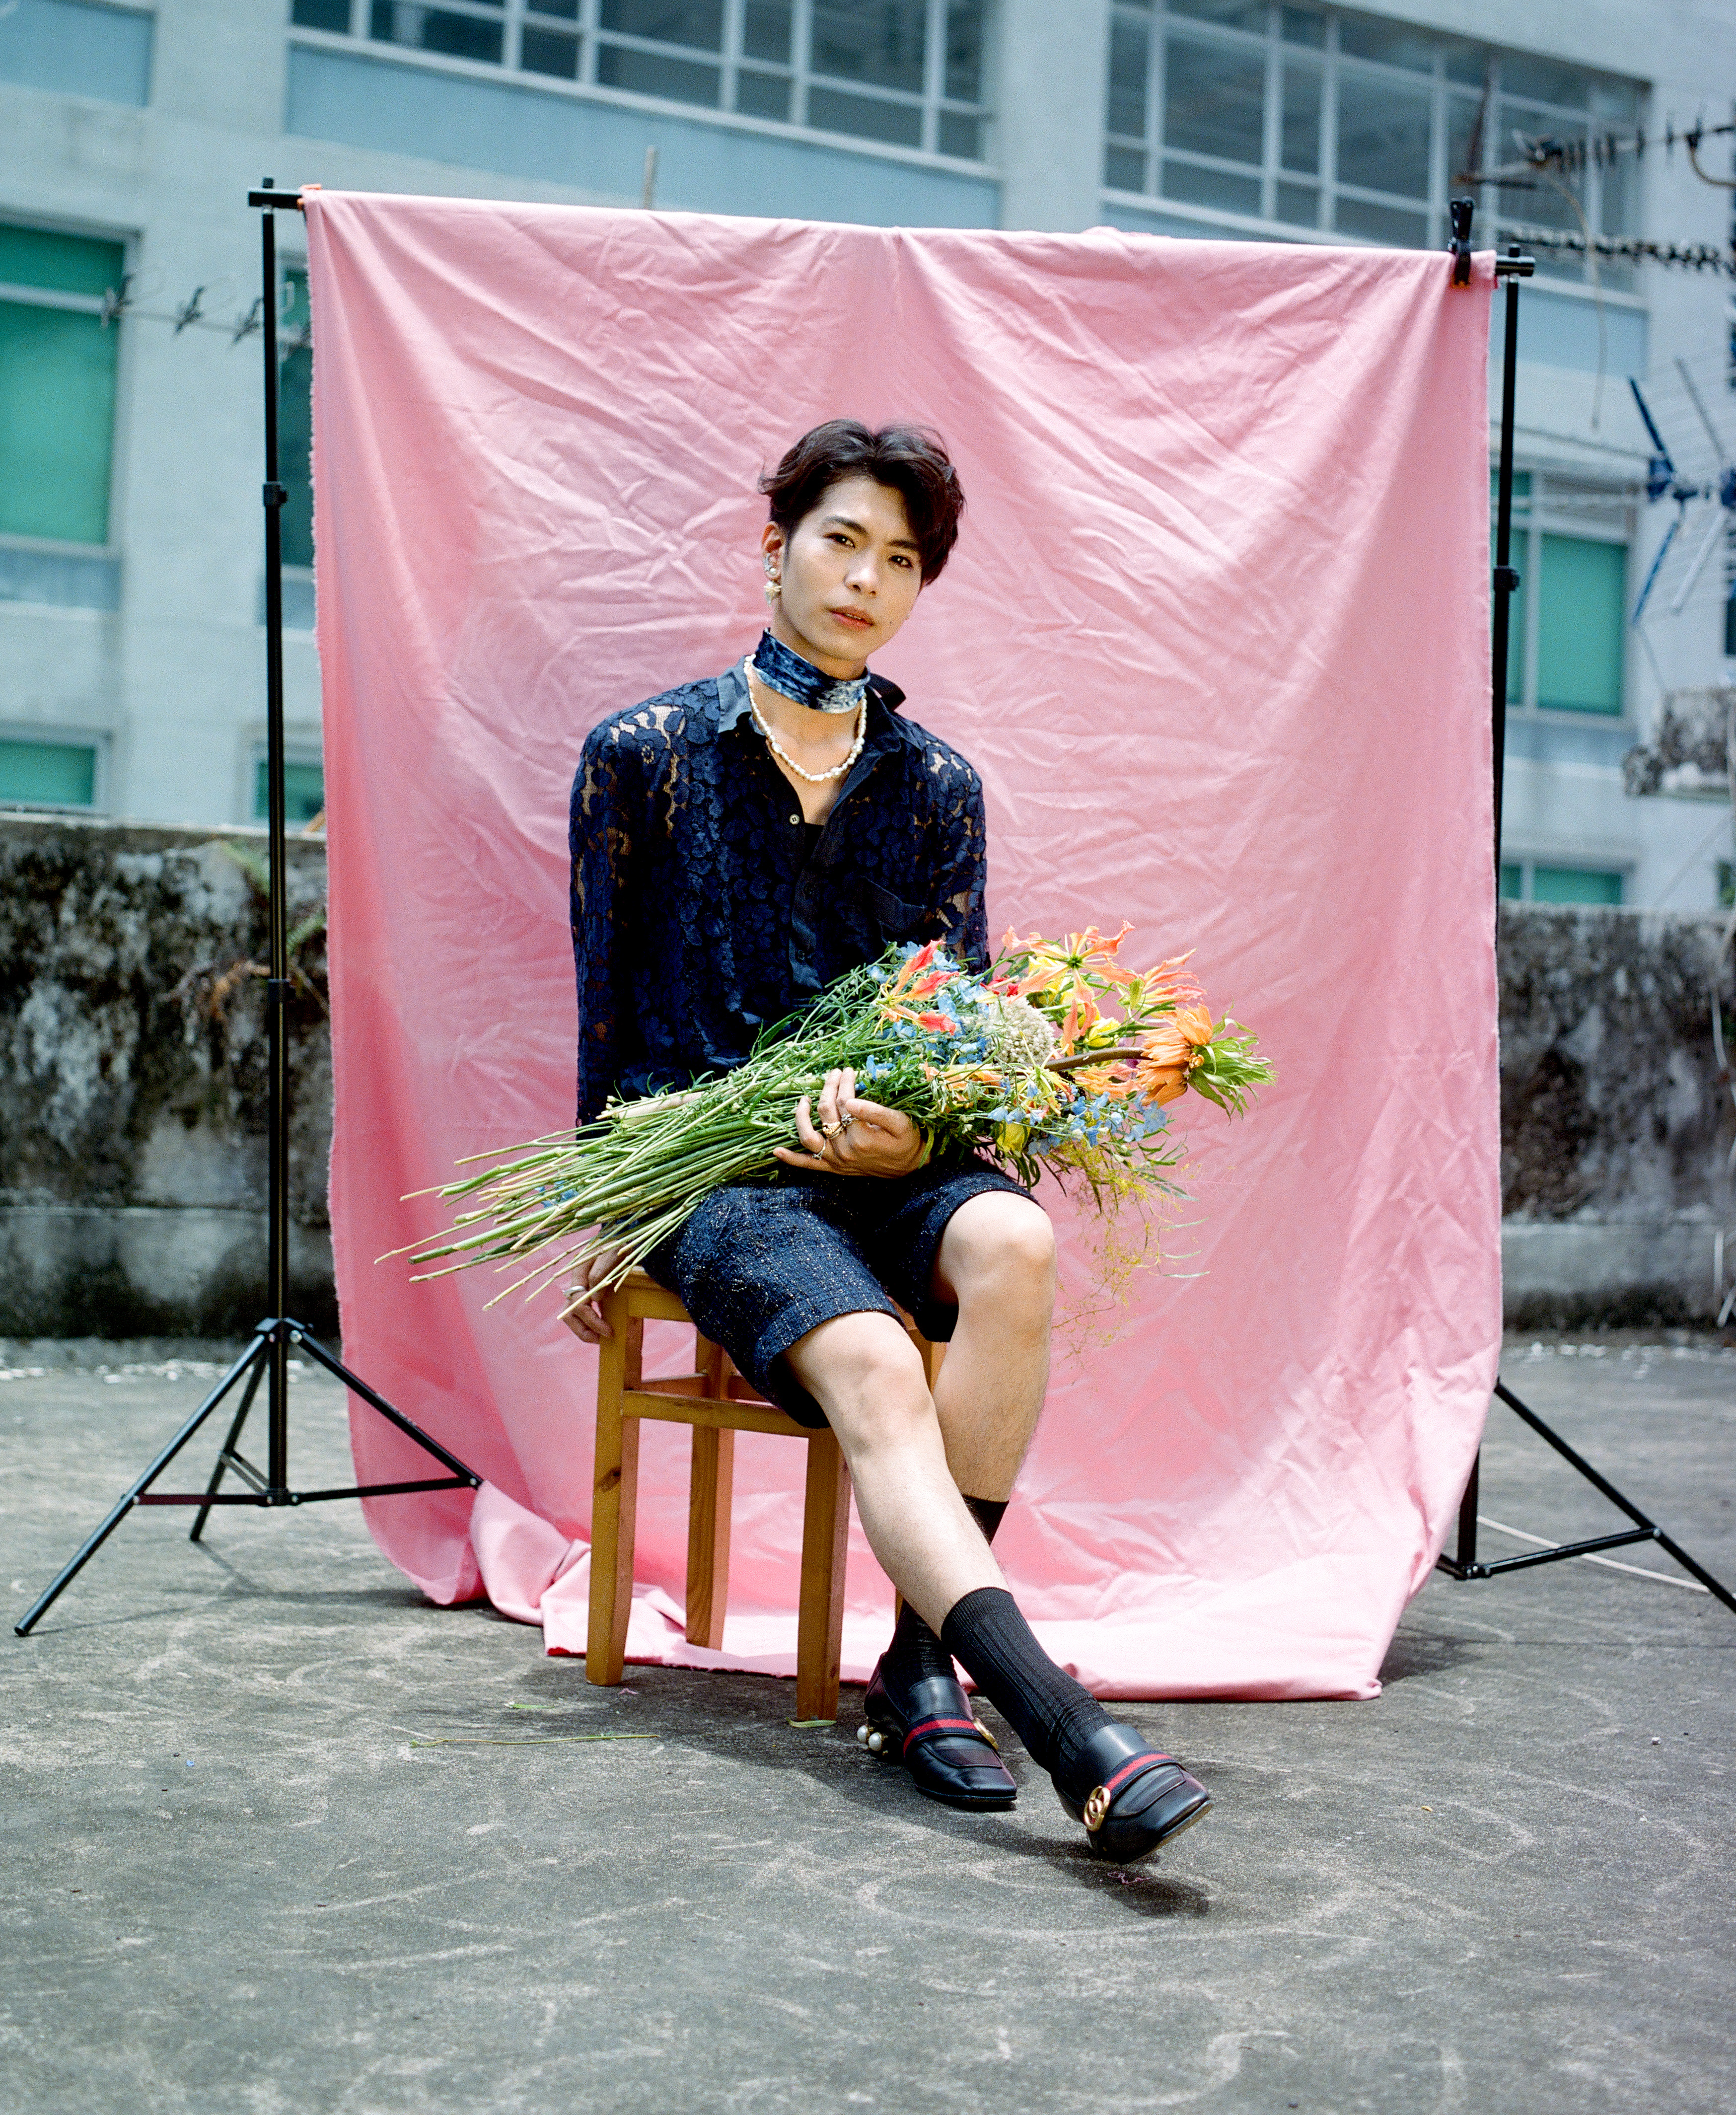 a portrait of mite sitting on a chair in front of a pink background and holding flowers